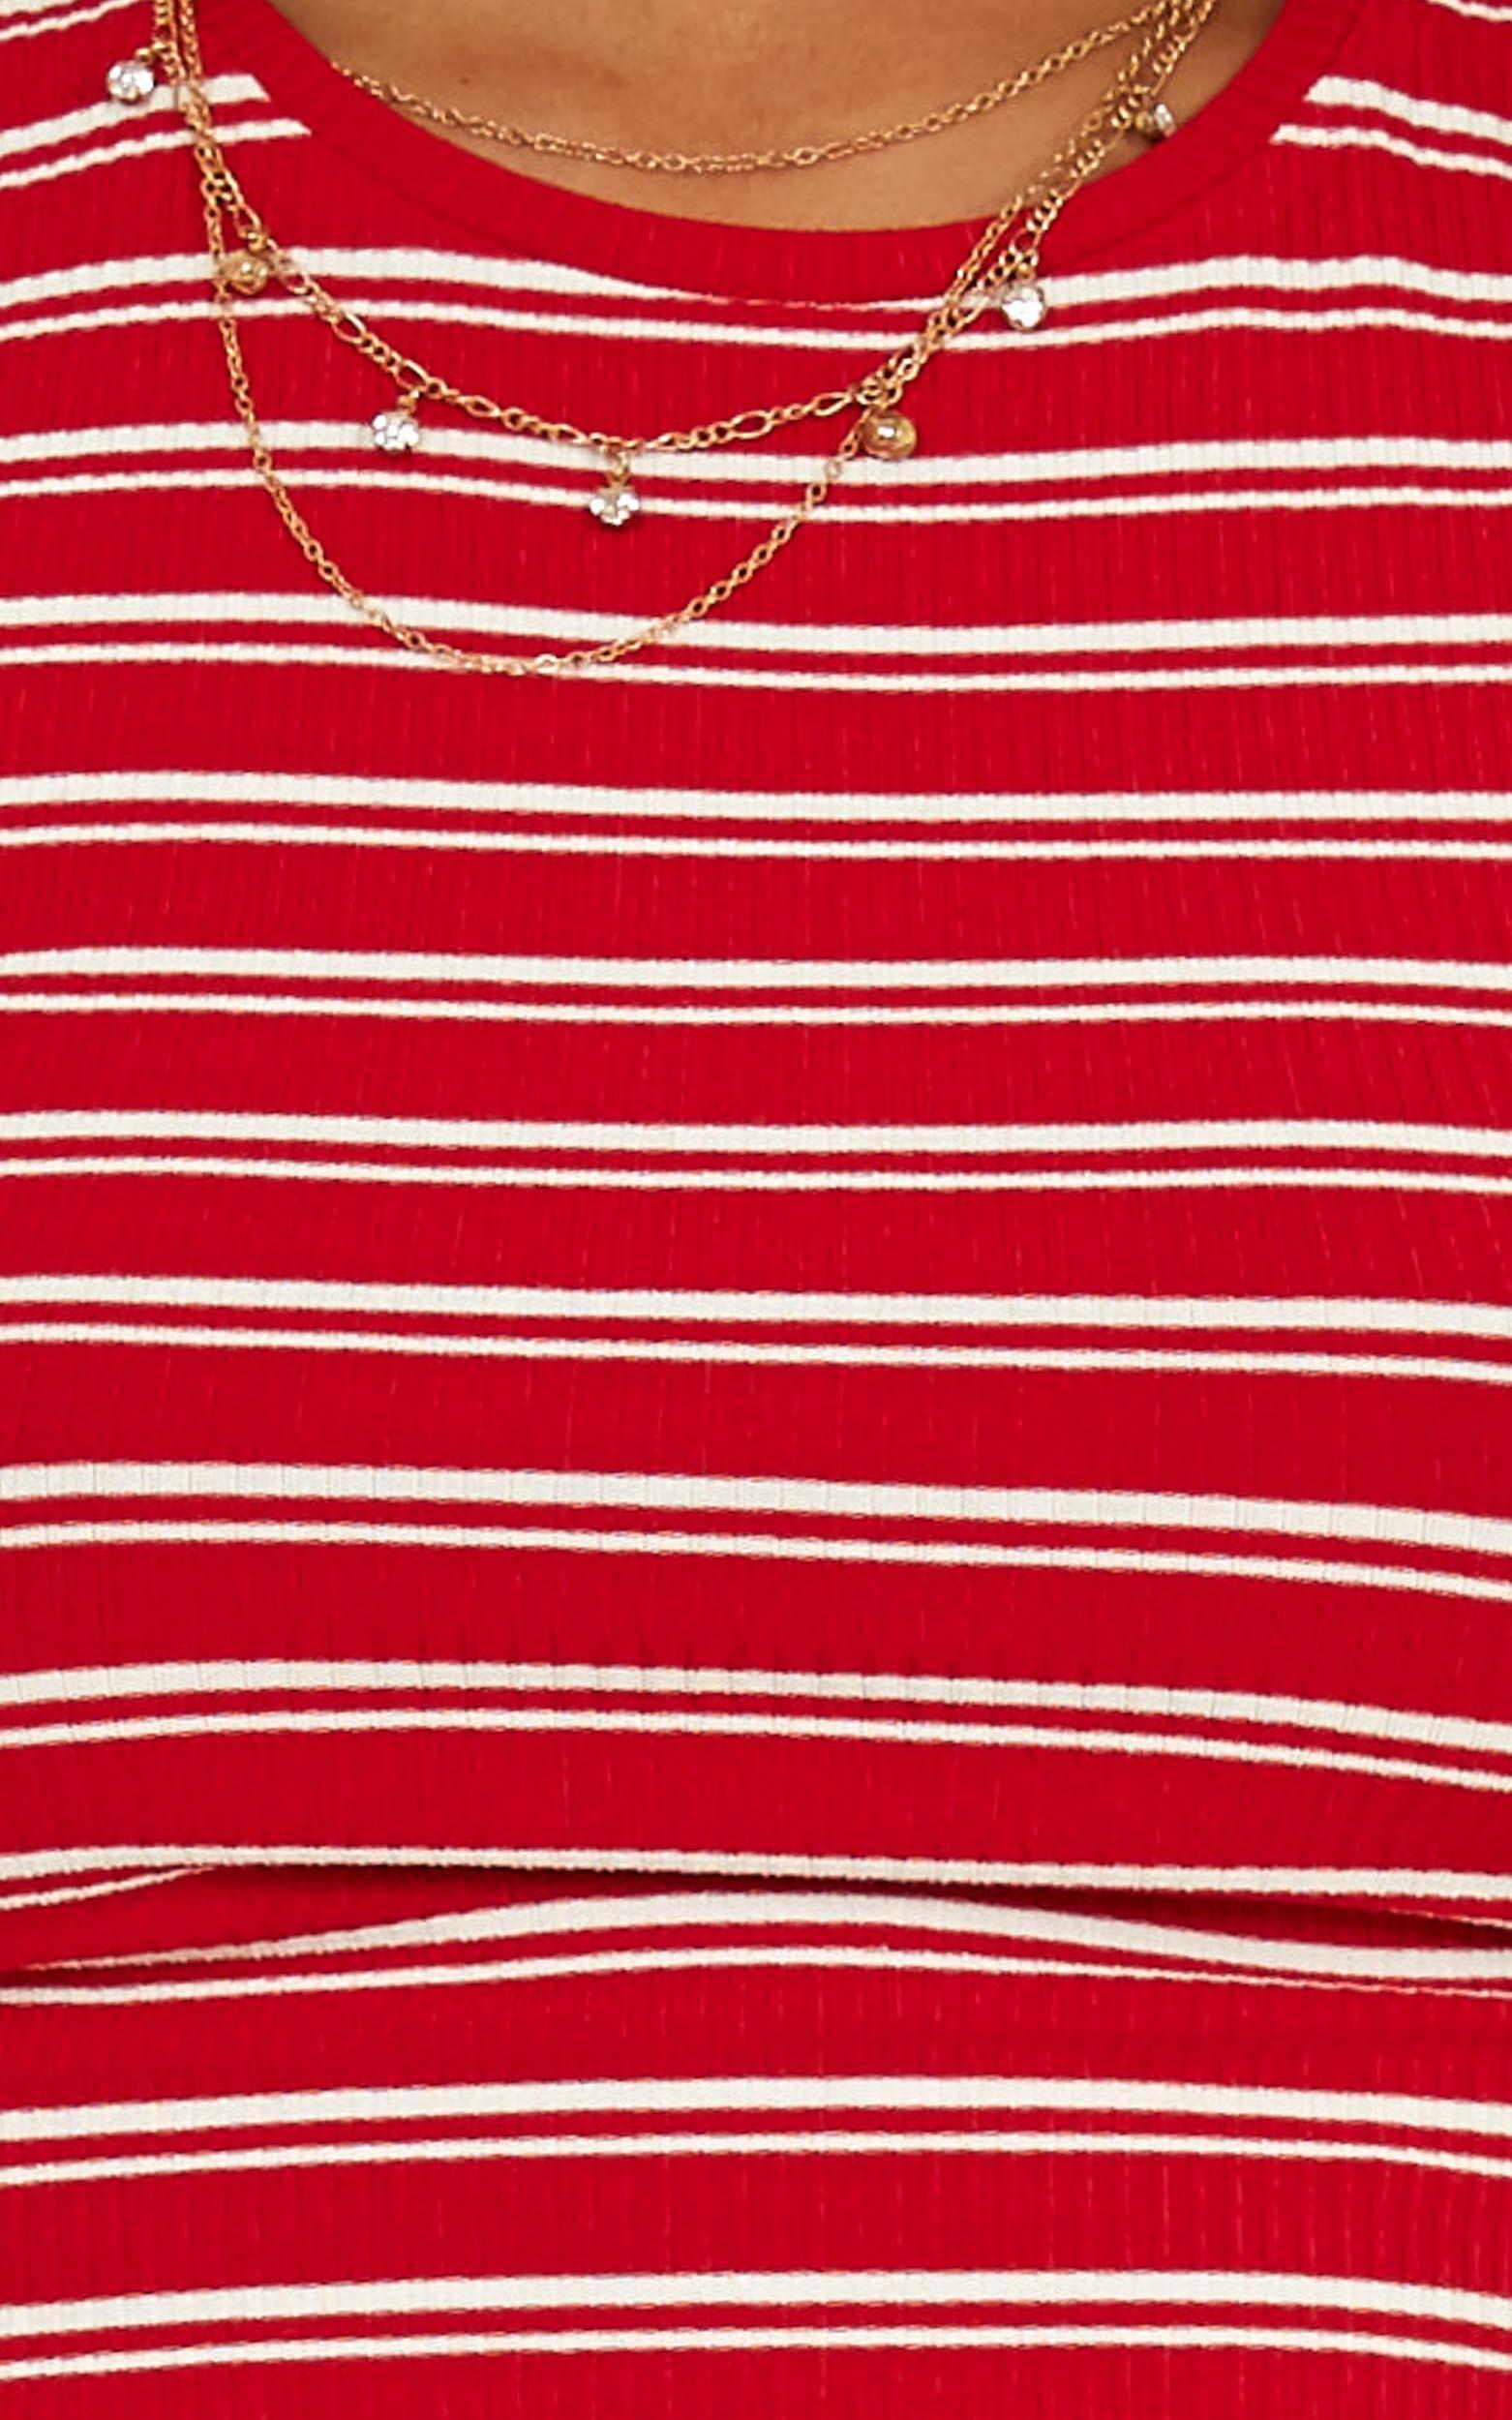 Lala Top In red stripe - 16 (XXL), Red, hi-res image number null